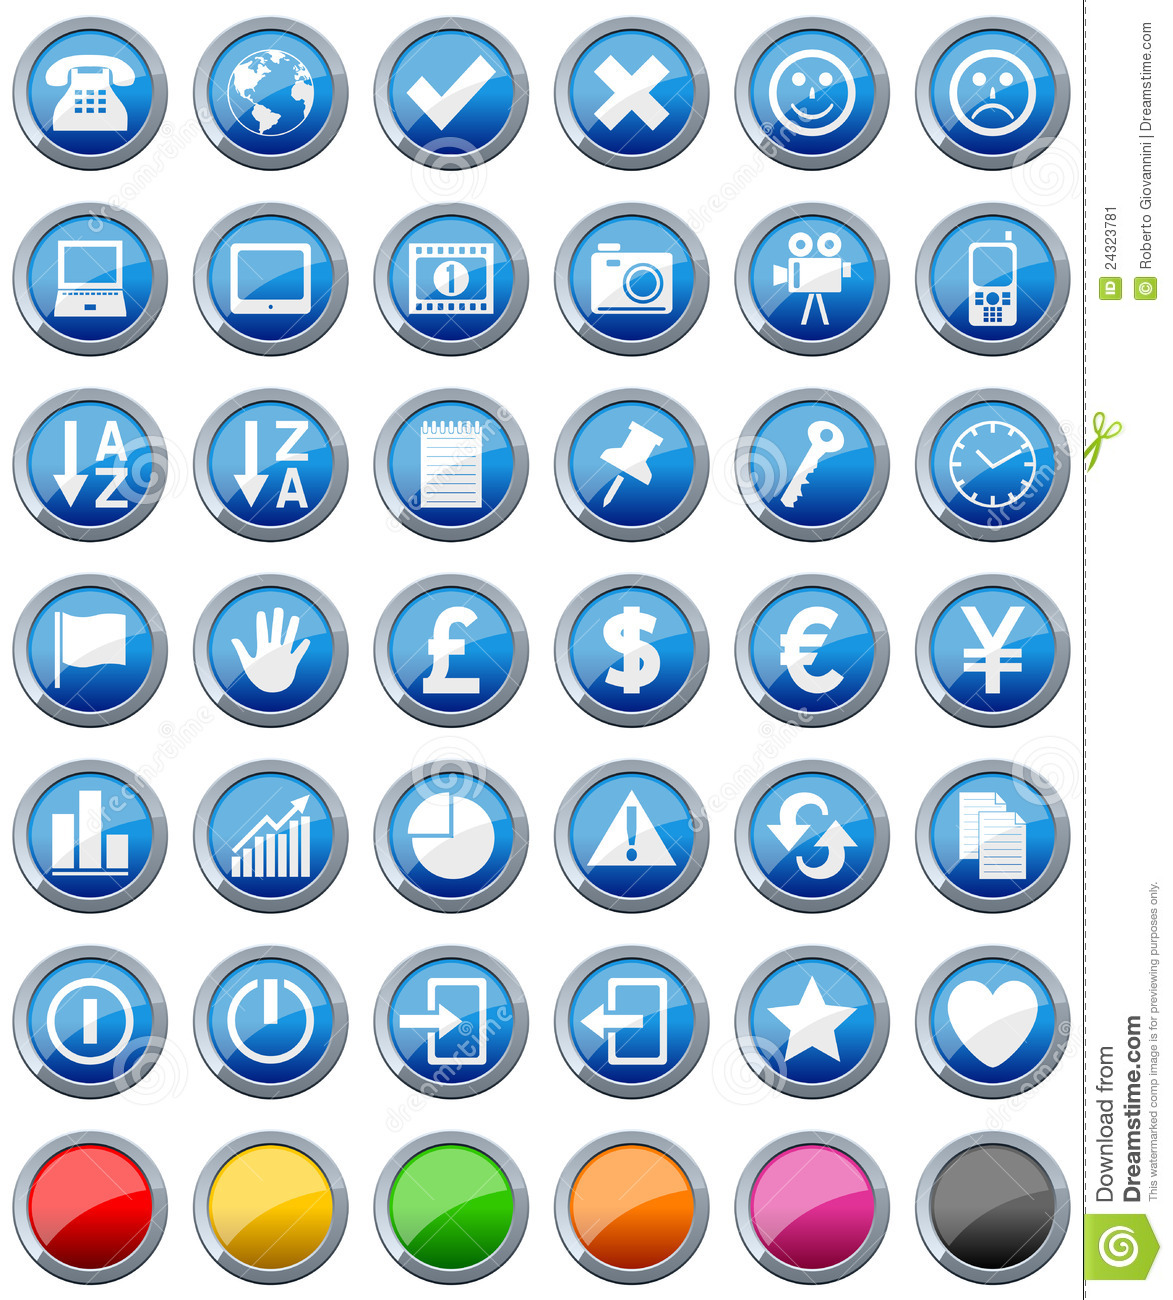 Glossy Buttons Icons Set [2]